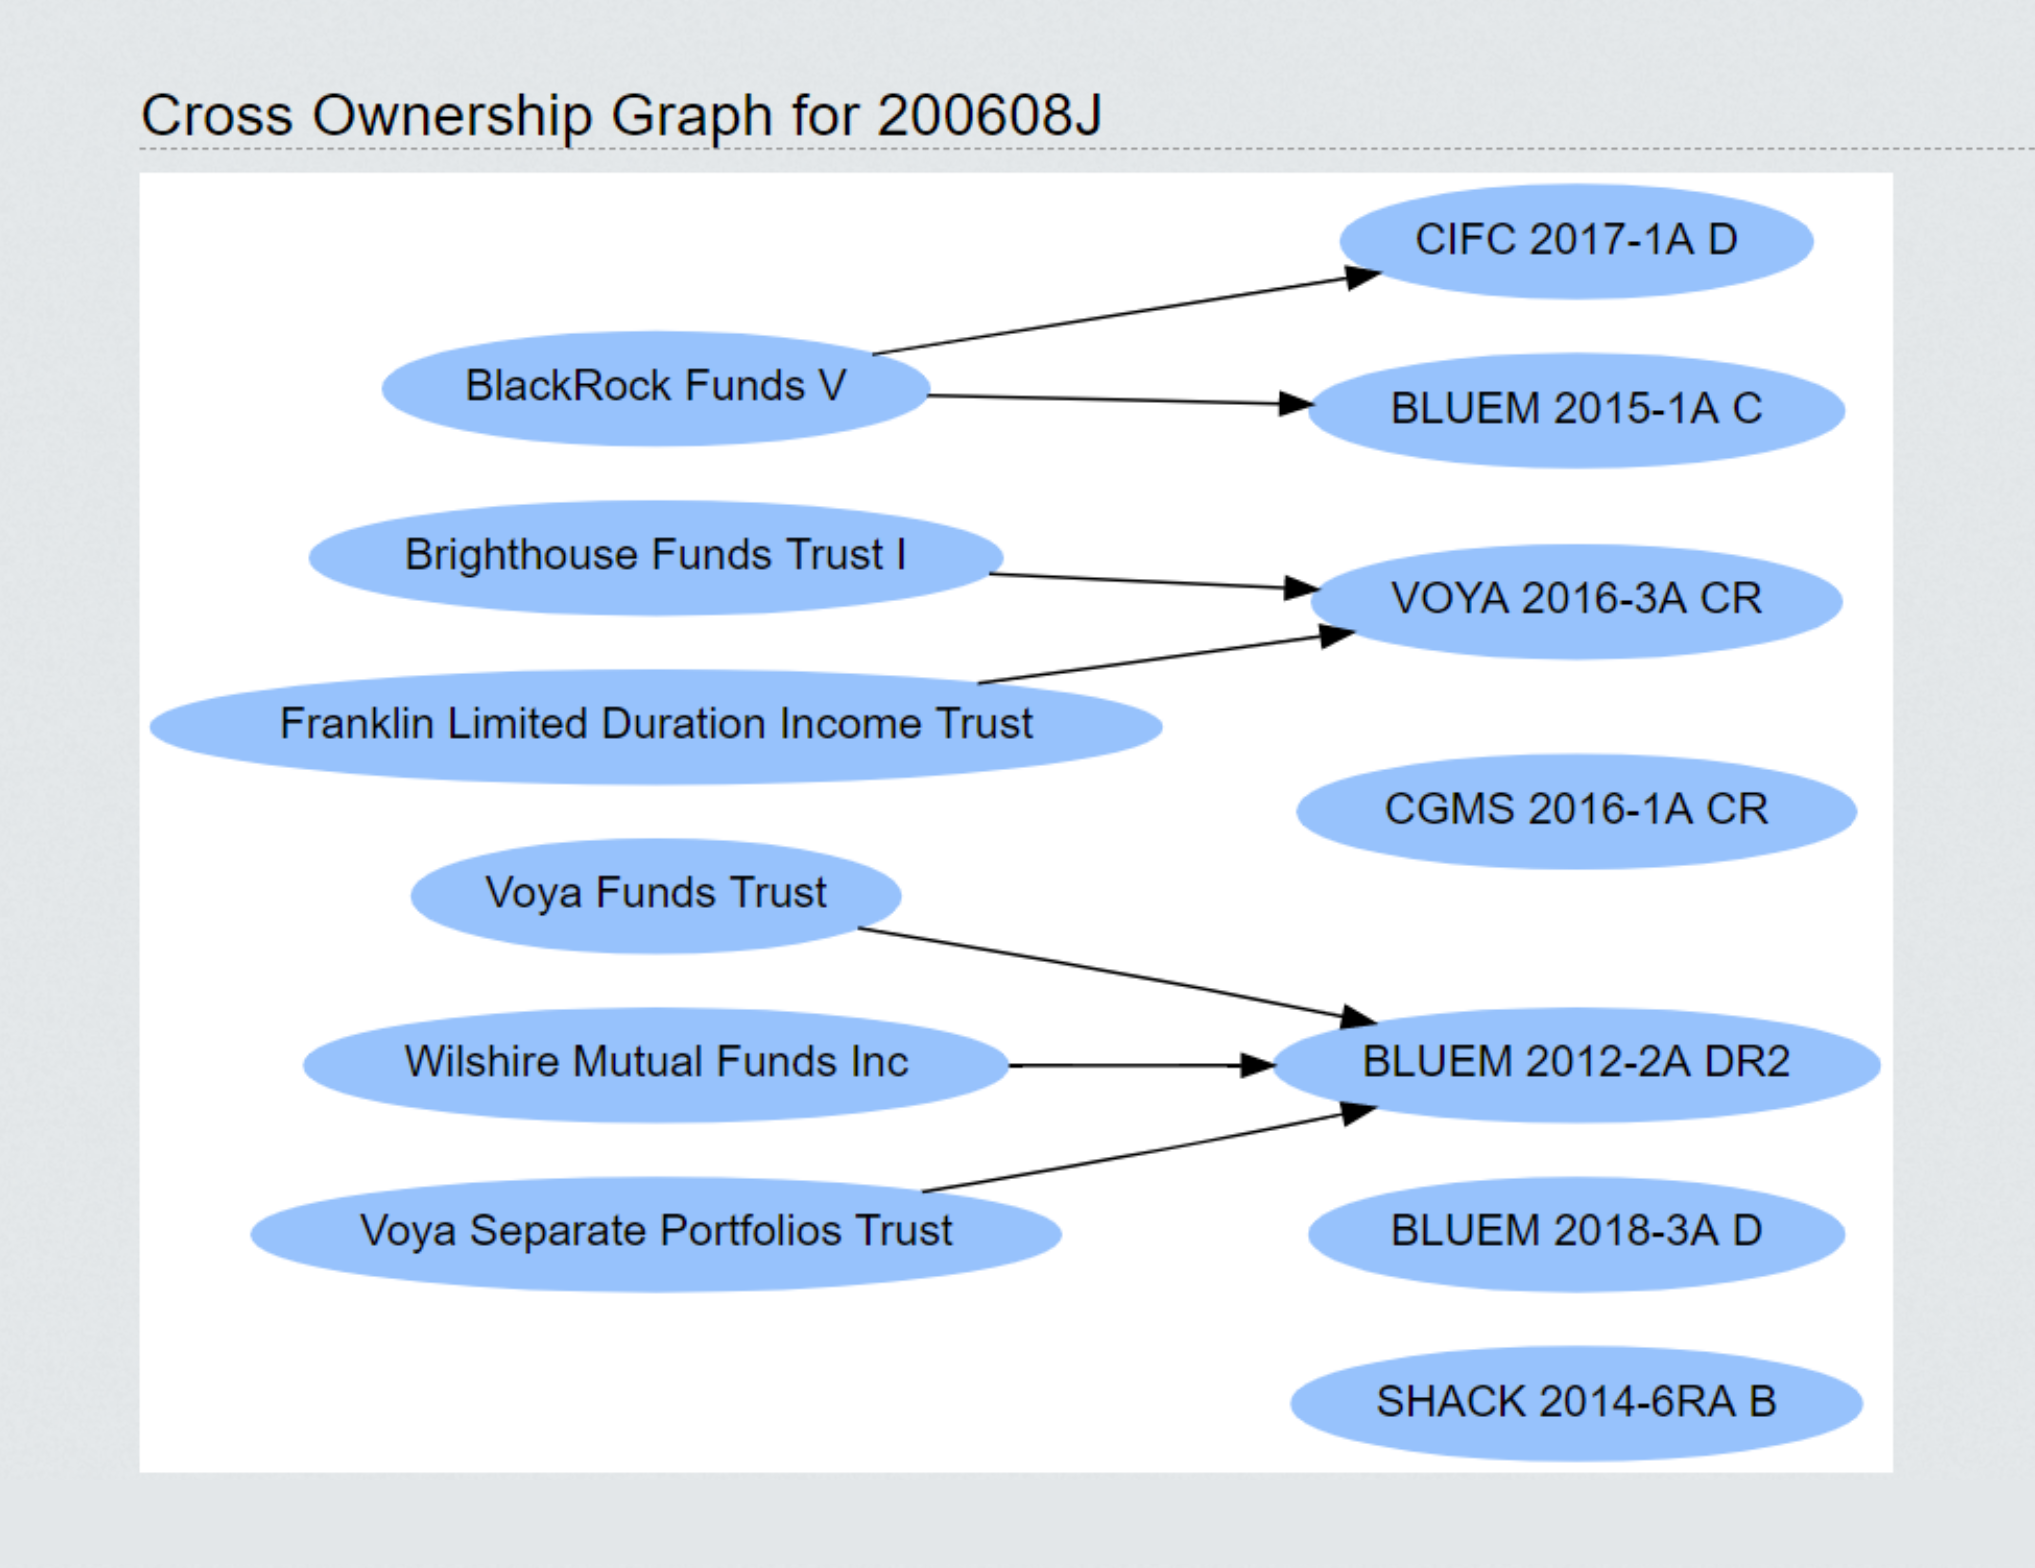 Cross Ownership Map Graph